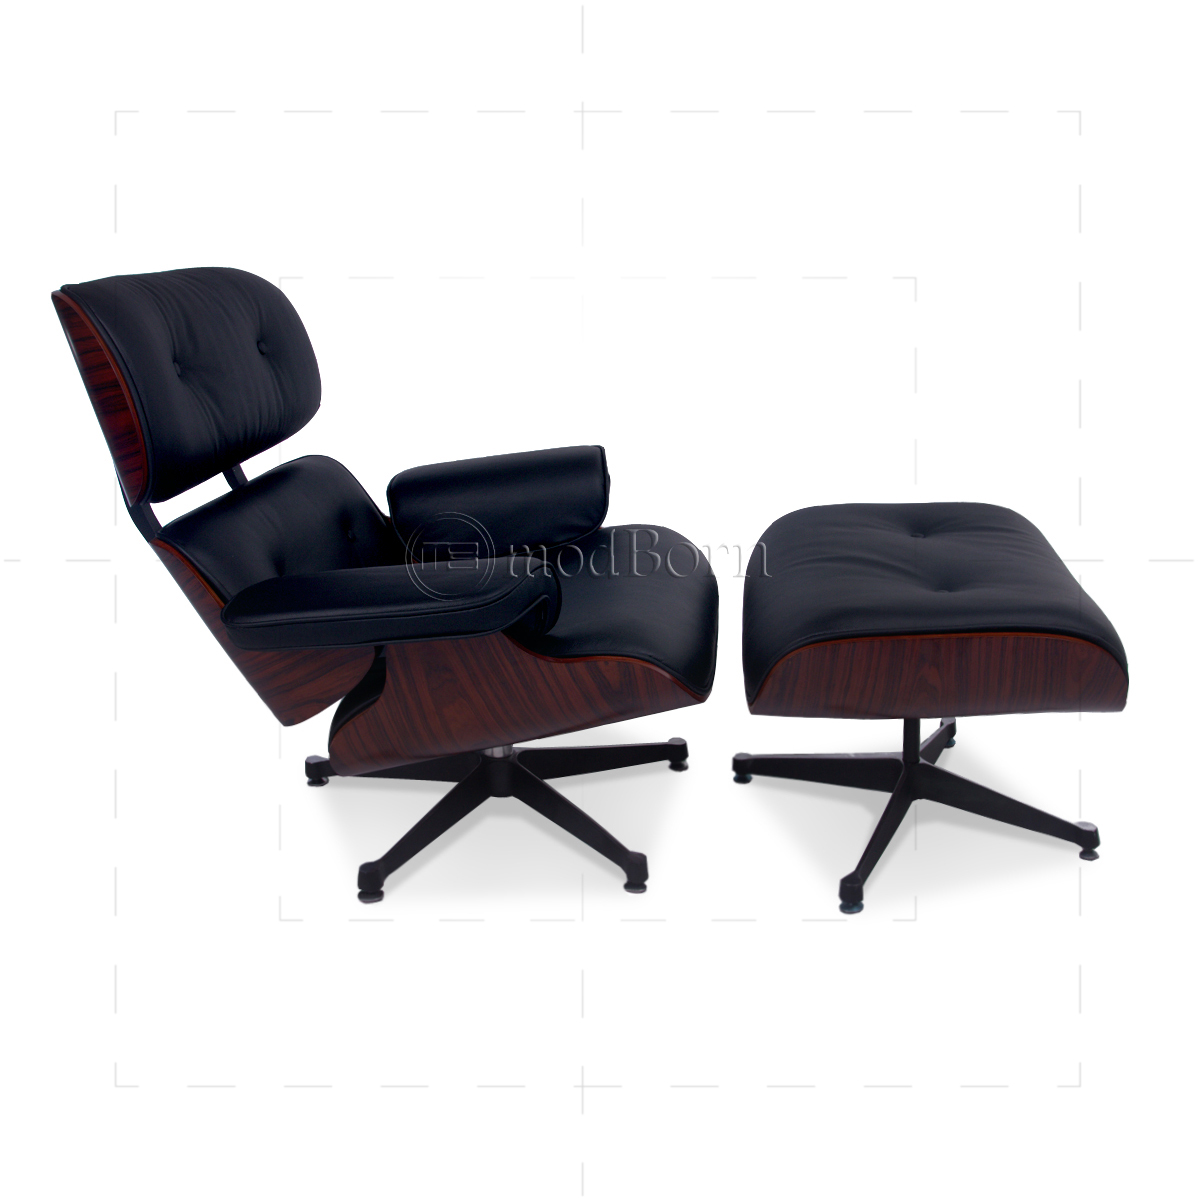 eames style lounge chair and ottoman black leather palisander rosewood replica. Black Bedroom Furniture Sets. Home Design Ideas